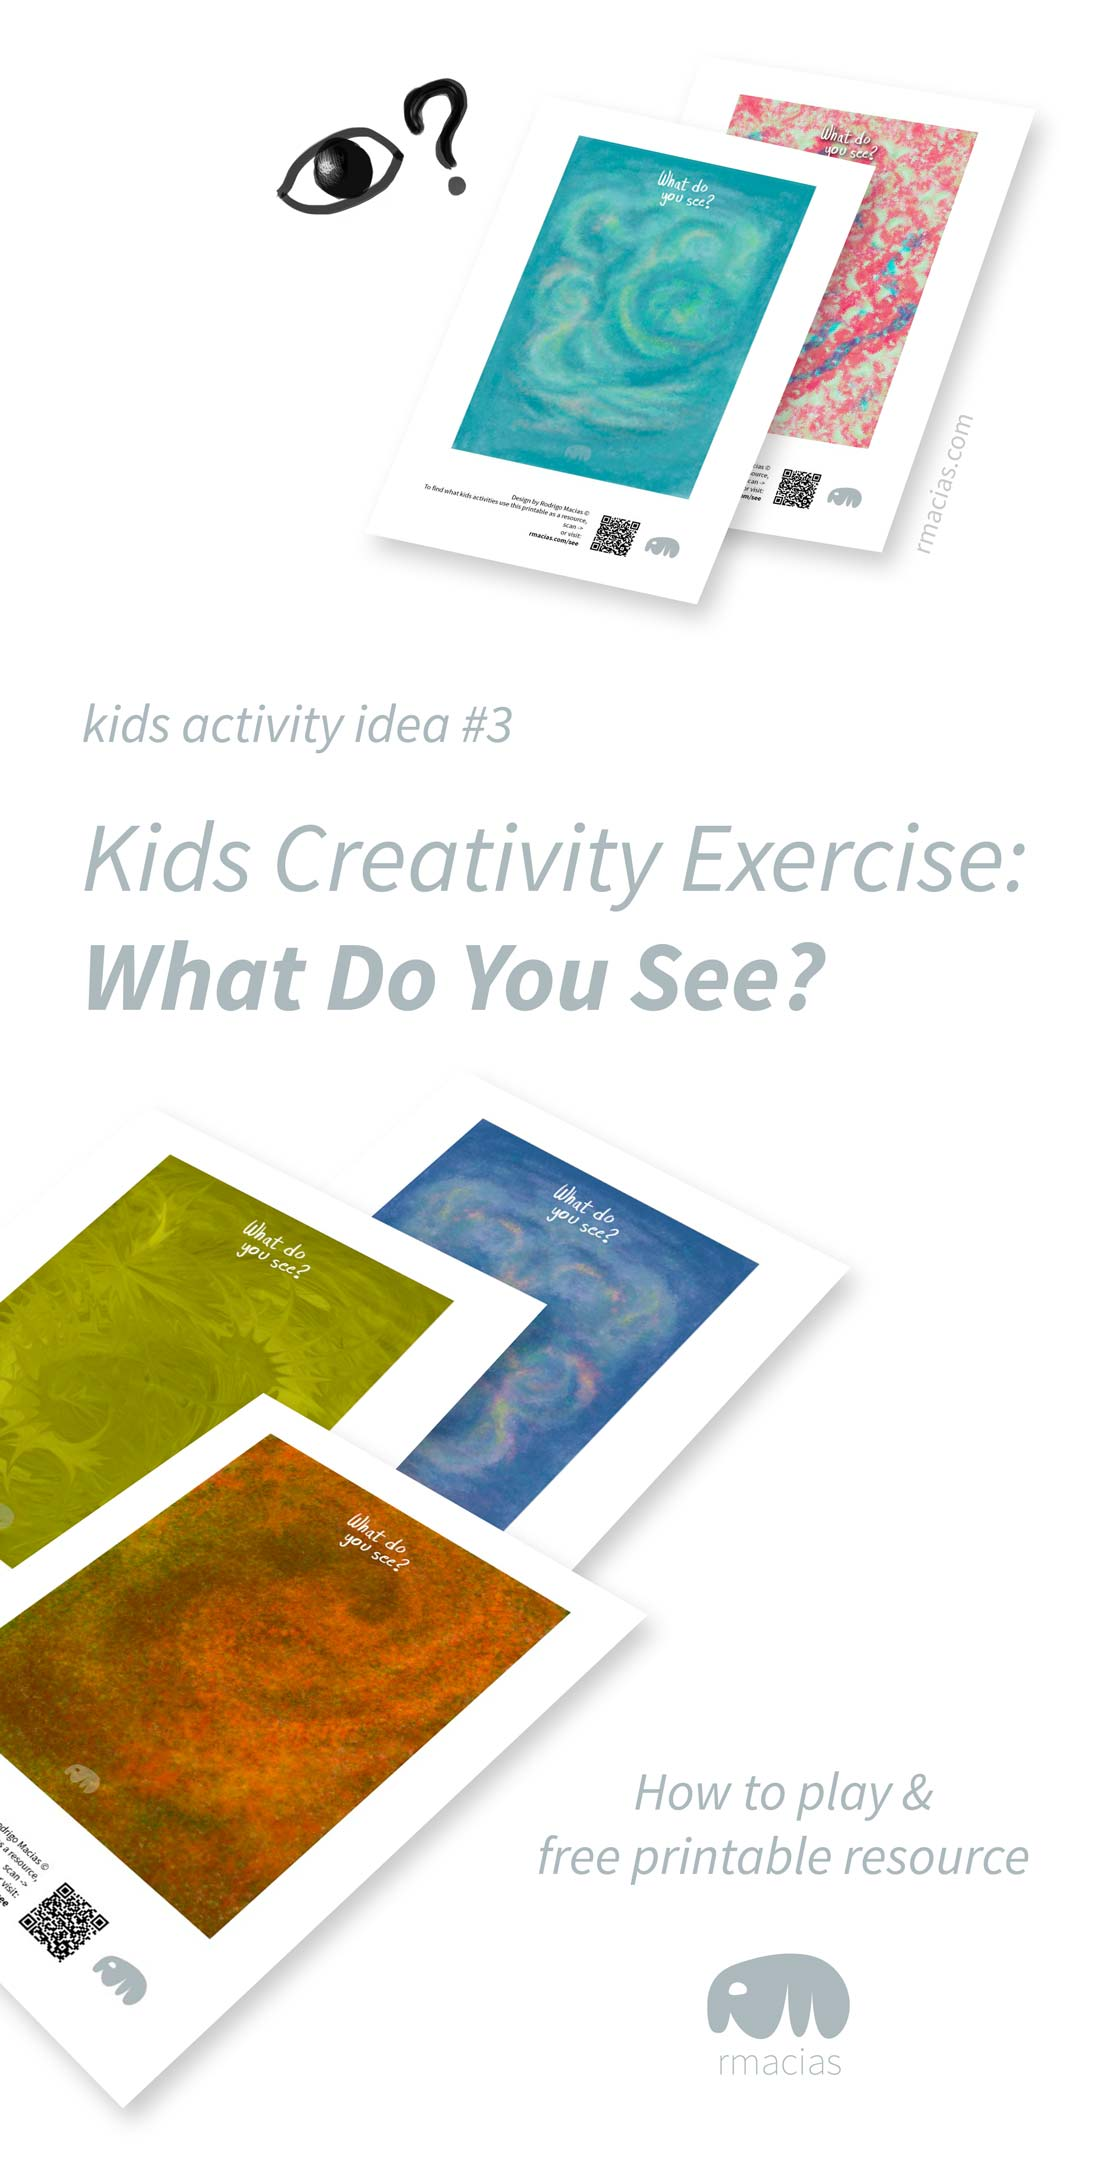 Easy DIY creativity game where kids find shapes in abstract images using their imagination. By Kids Activities Designer Rodrigo Macias.